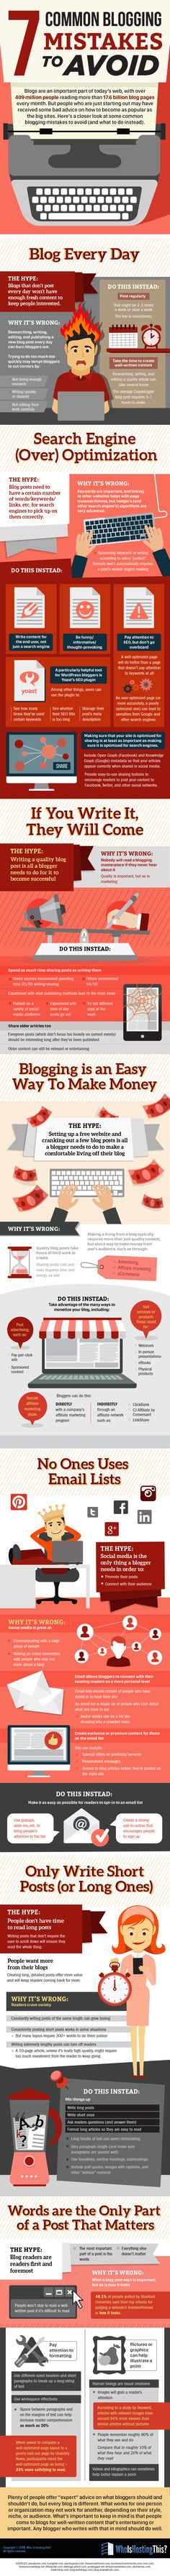 7 Common Blogging Mistakes To Avoid - infographic